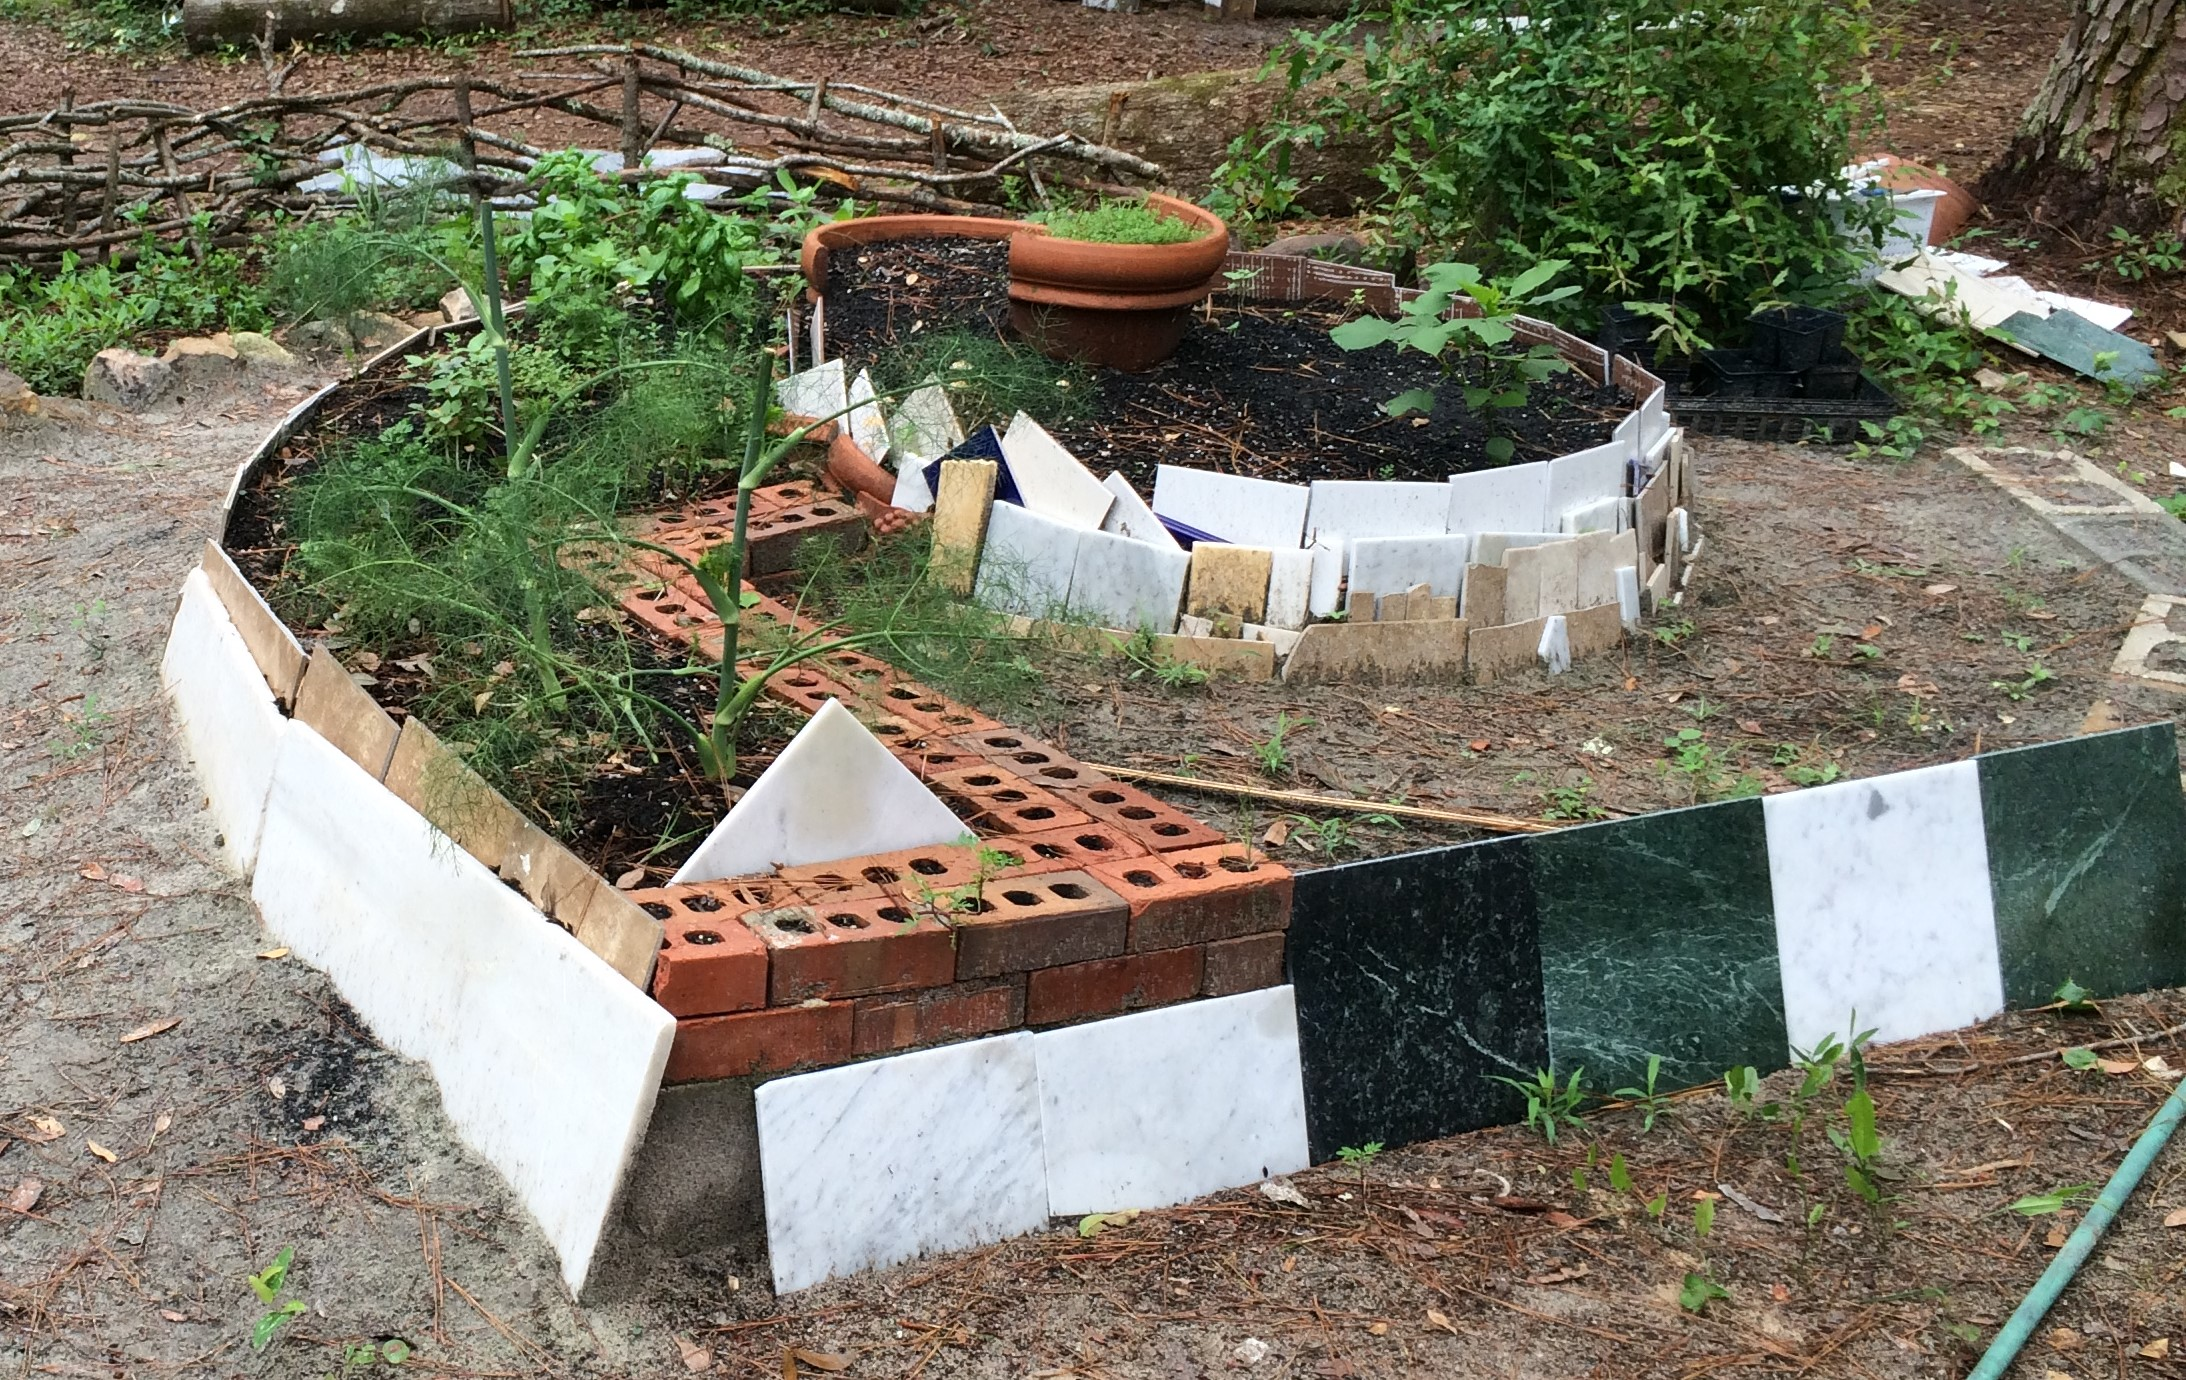 Although Wood Is Most Por You Can Use Materials Such As Concrete Bricks Or Tiles To Build A Raised Bed Photo By Molly Jameson